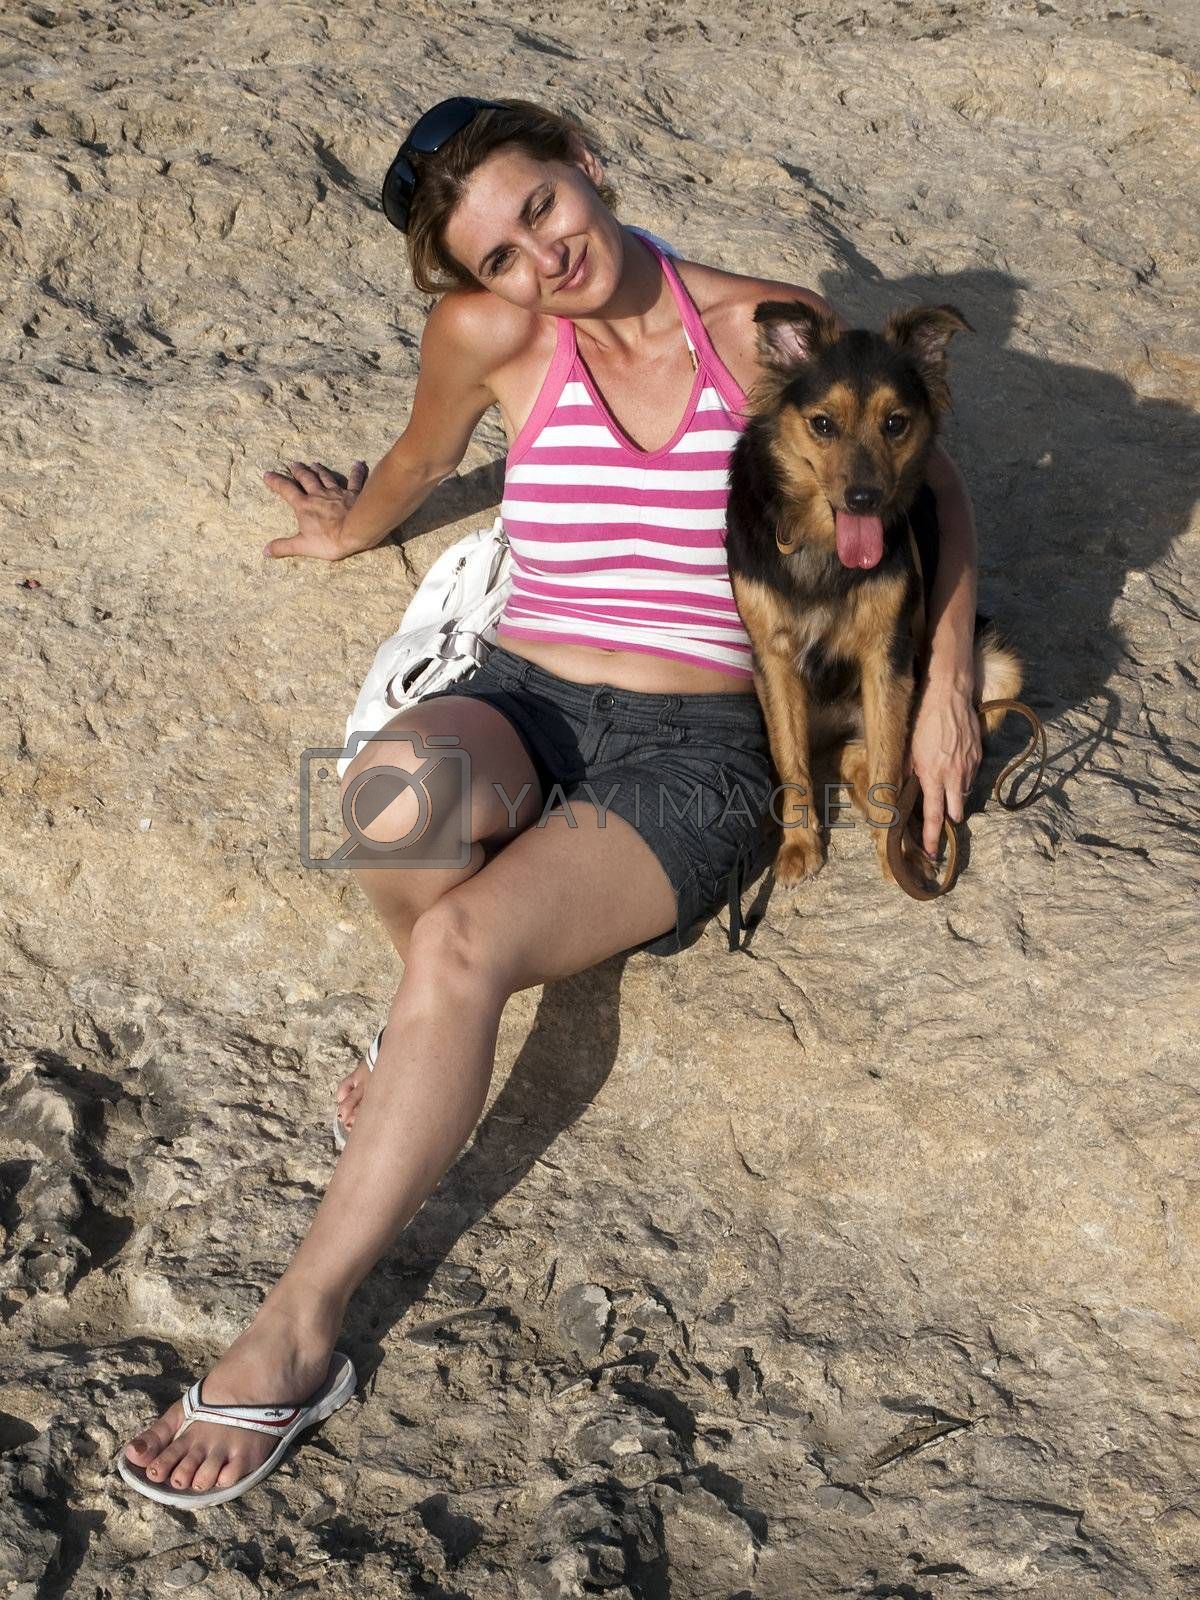 Royalty free image of Woman and Dog by PhotoWorks